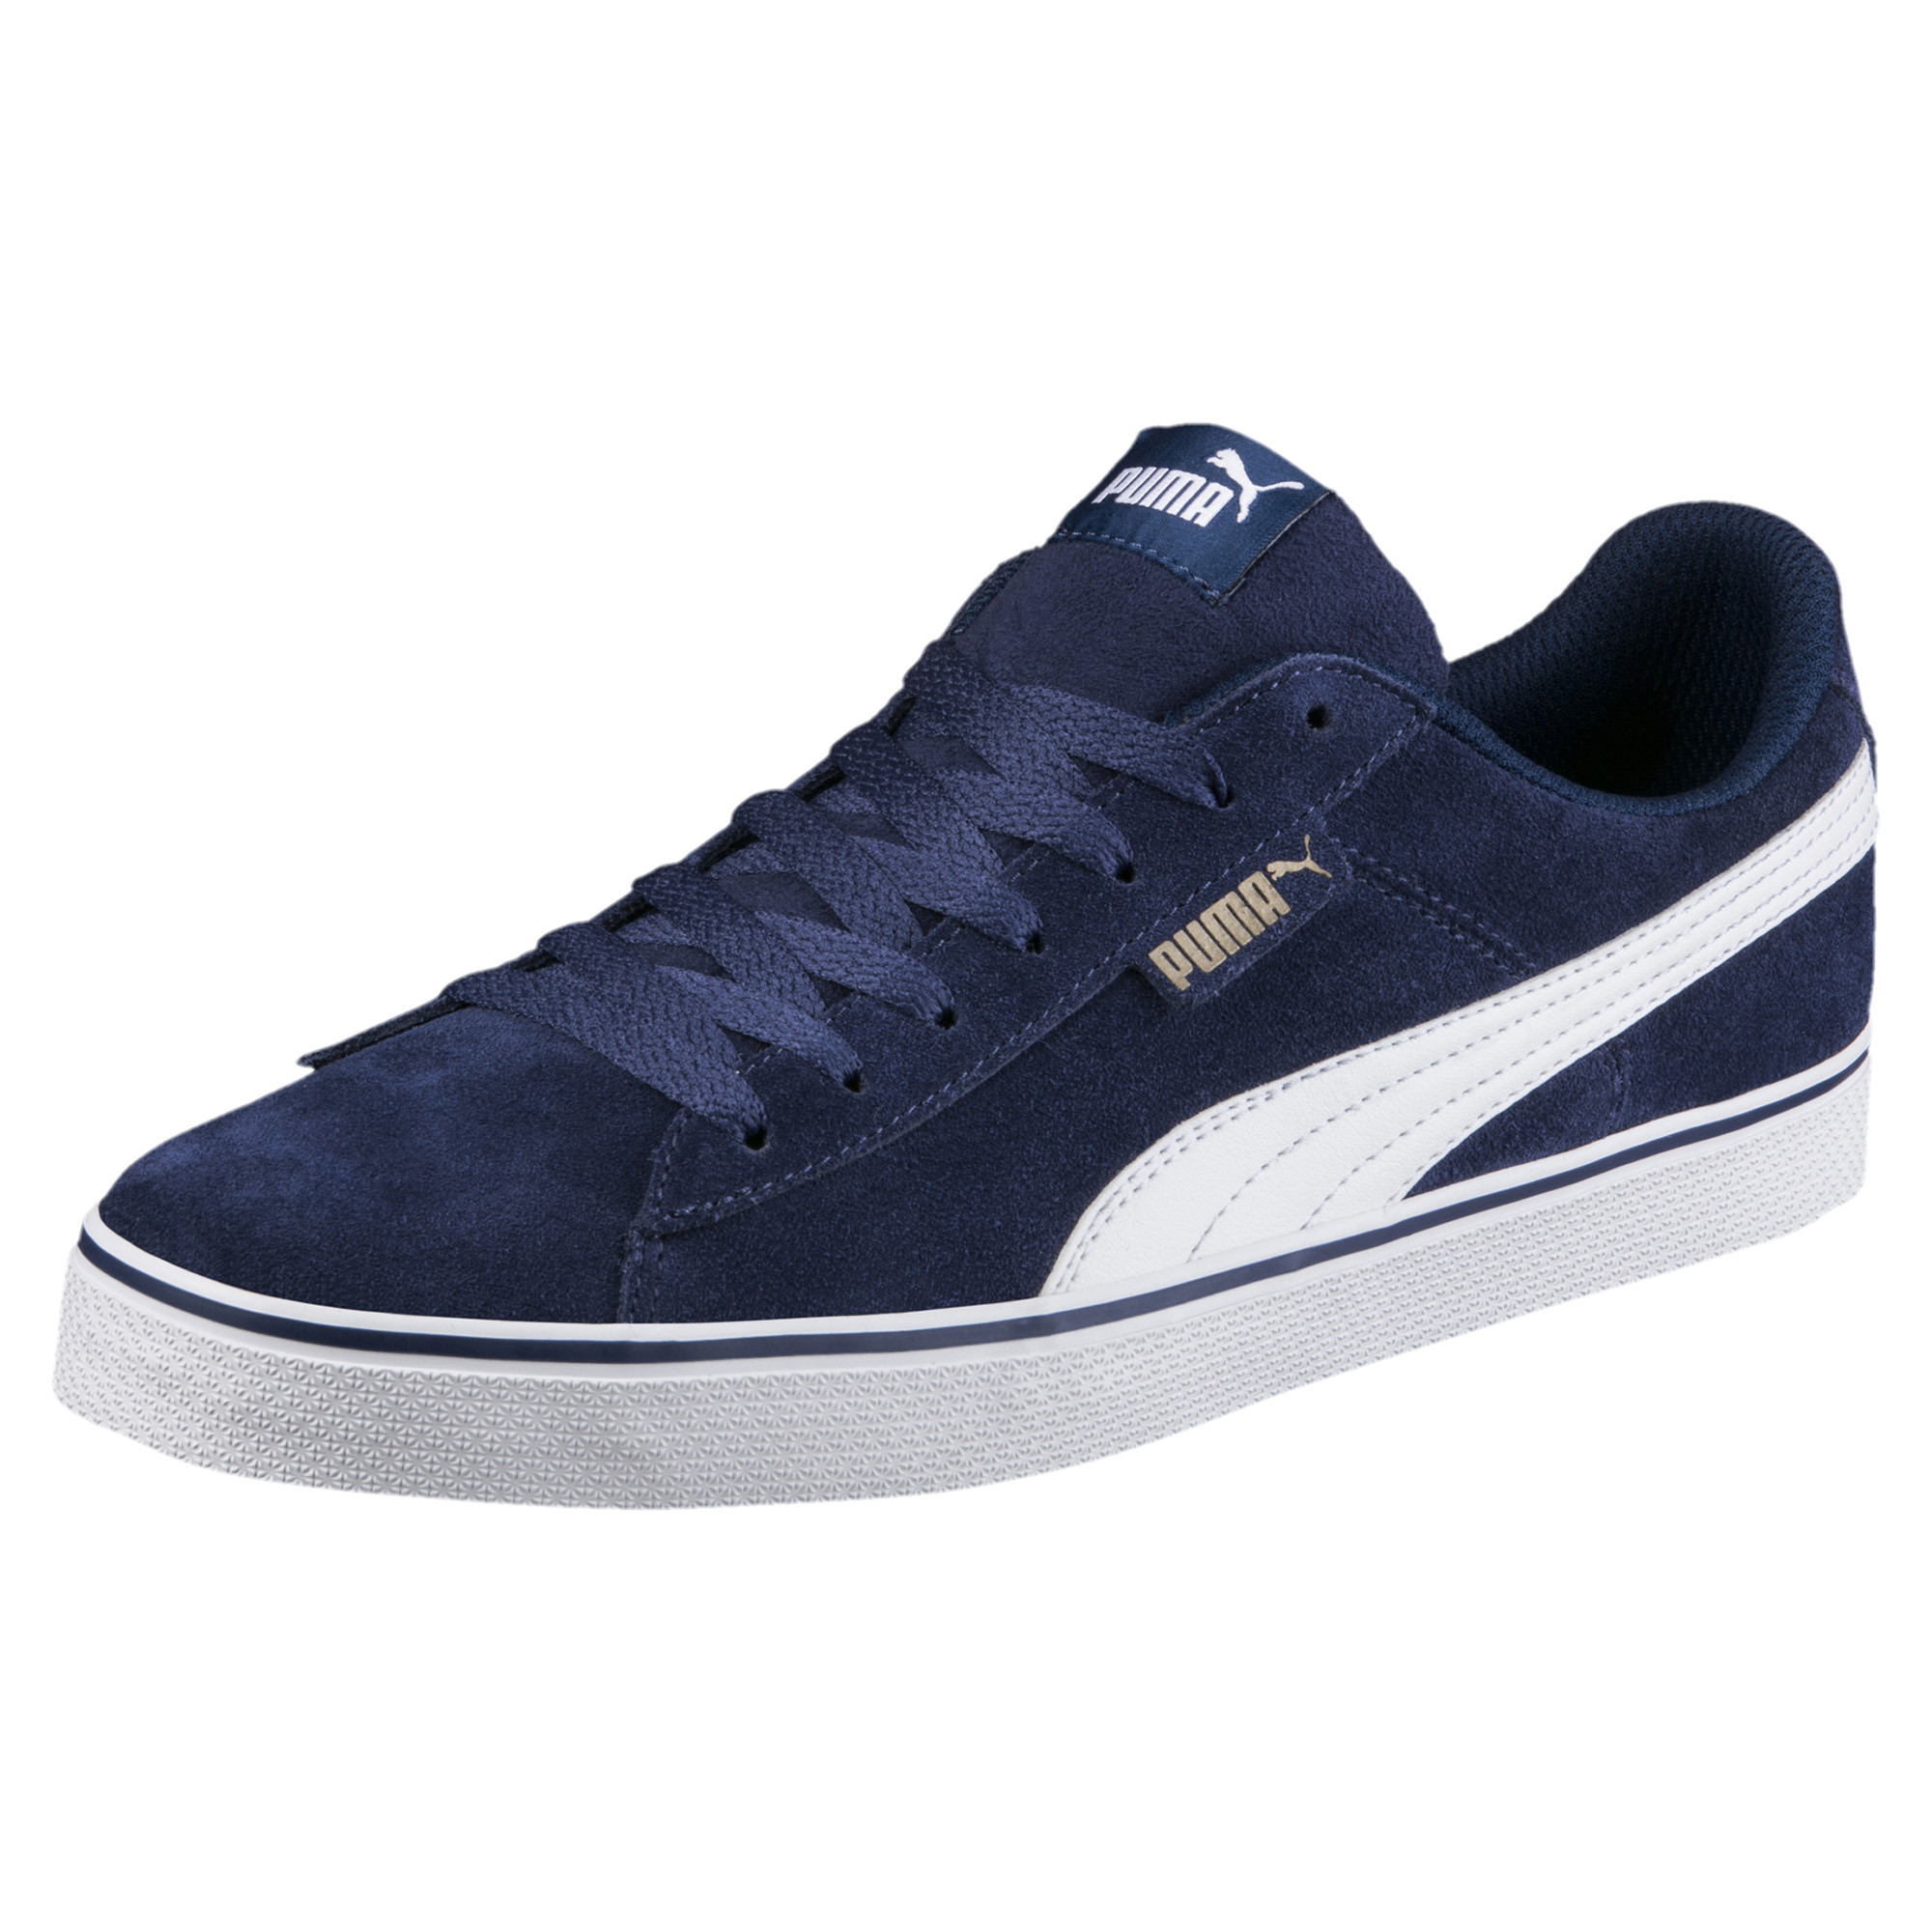 PUMA-Puma-1948-Vulc-Men-s-Sneakers-Men-Shoe-Basics thumbnail 9